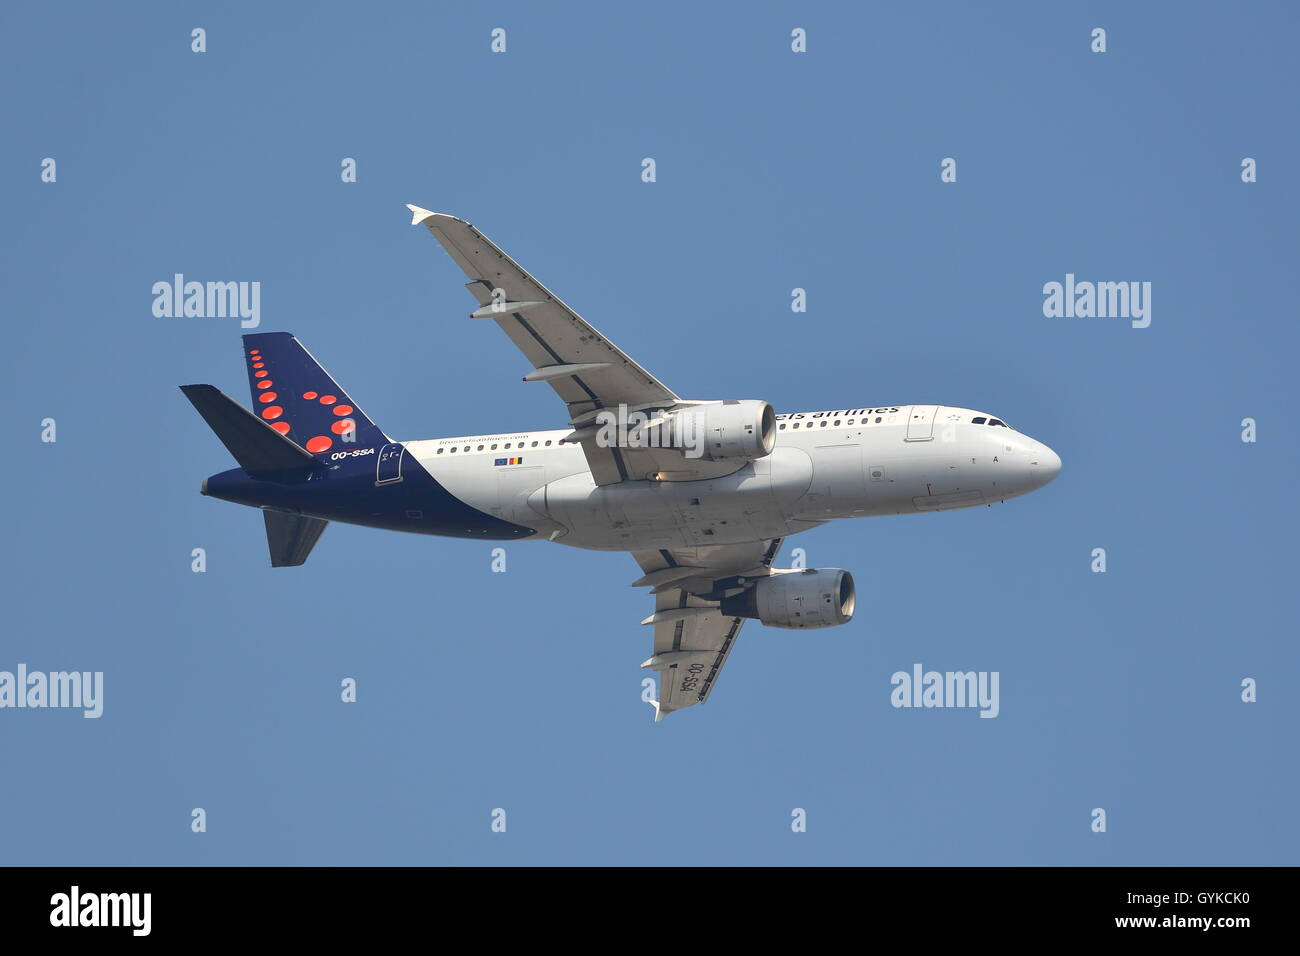 Brussels Airlines Airbus A319-111 OO-SSA departing from London Heathrow Airport, UK - Stock Image